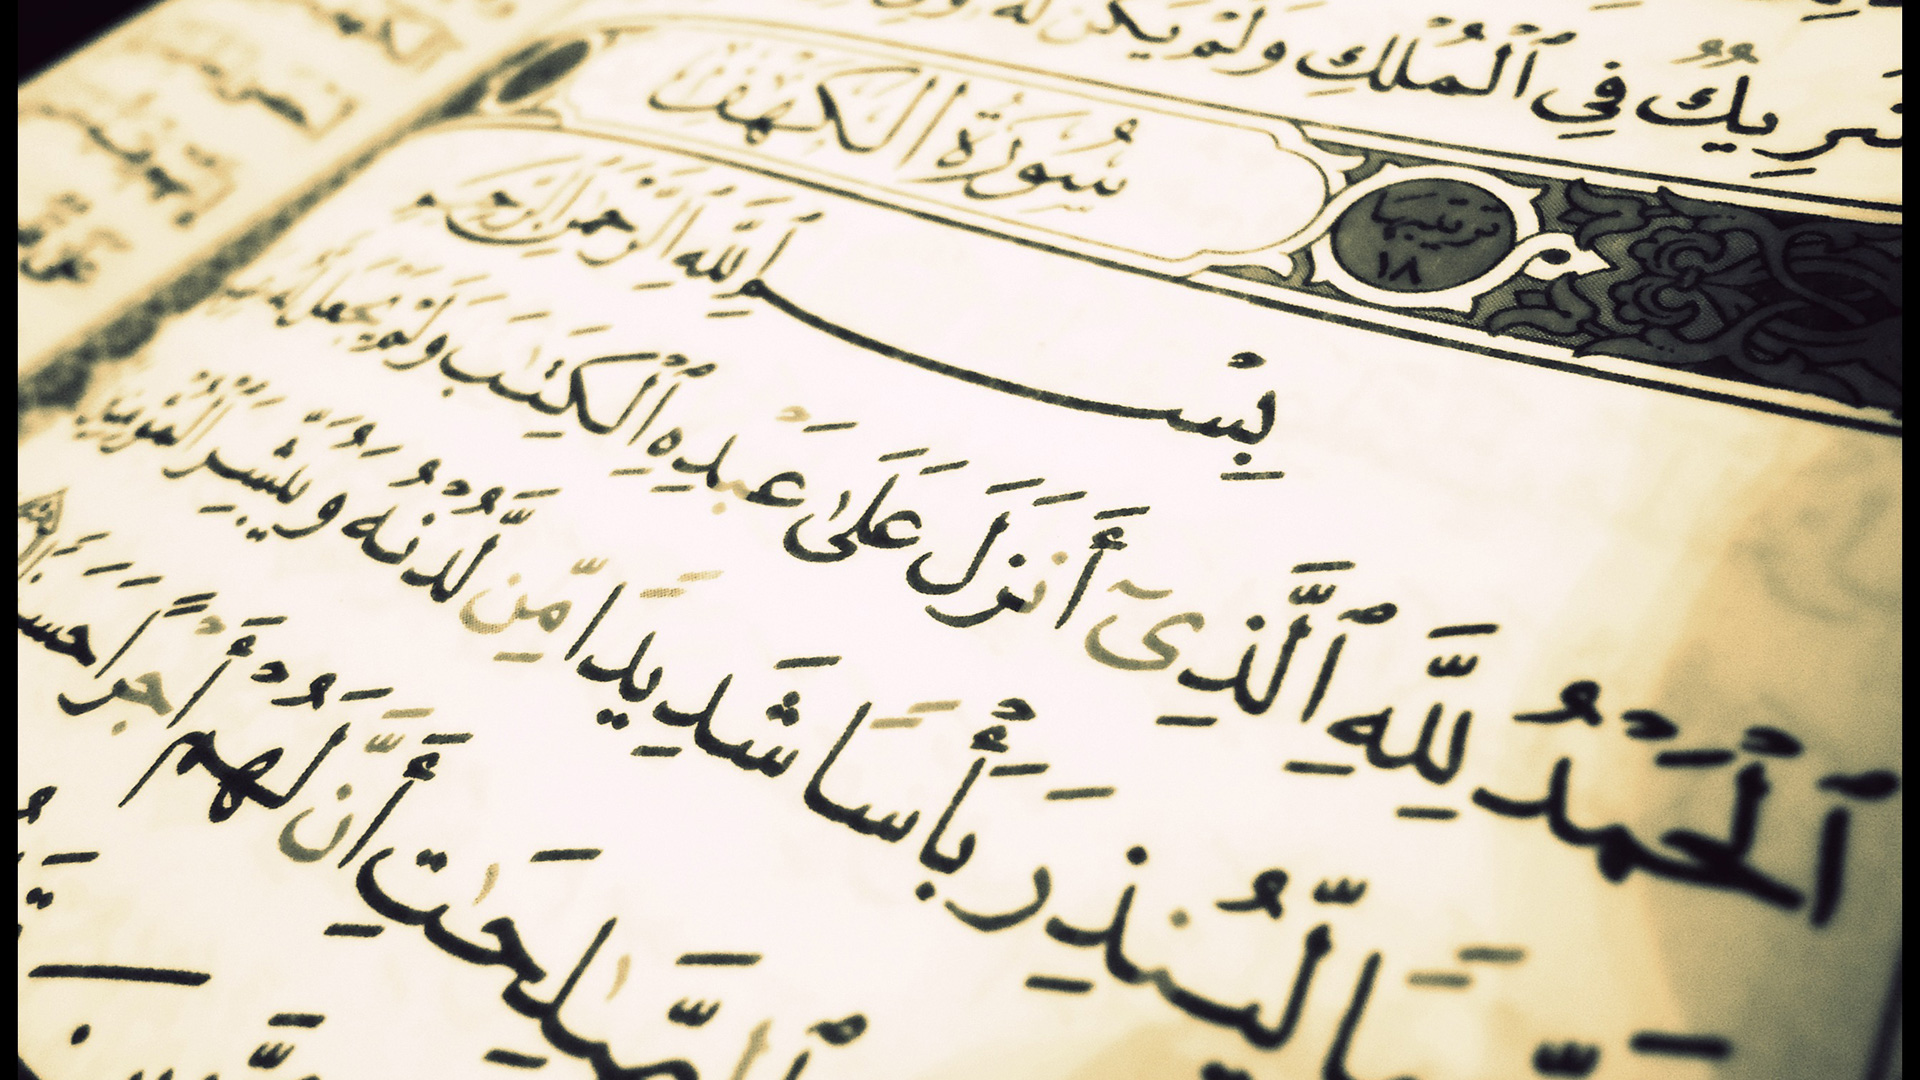 Islamic_Wallpaper_Quran_011-1920x1080